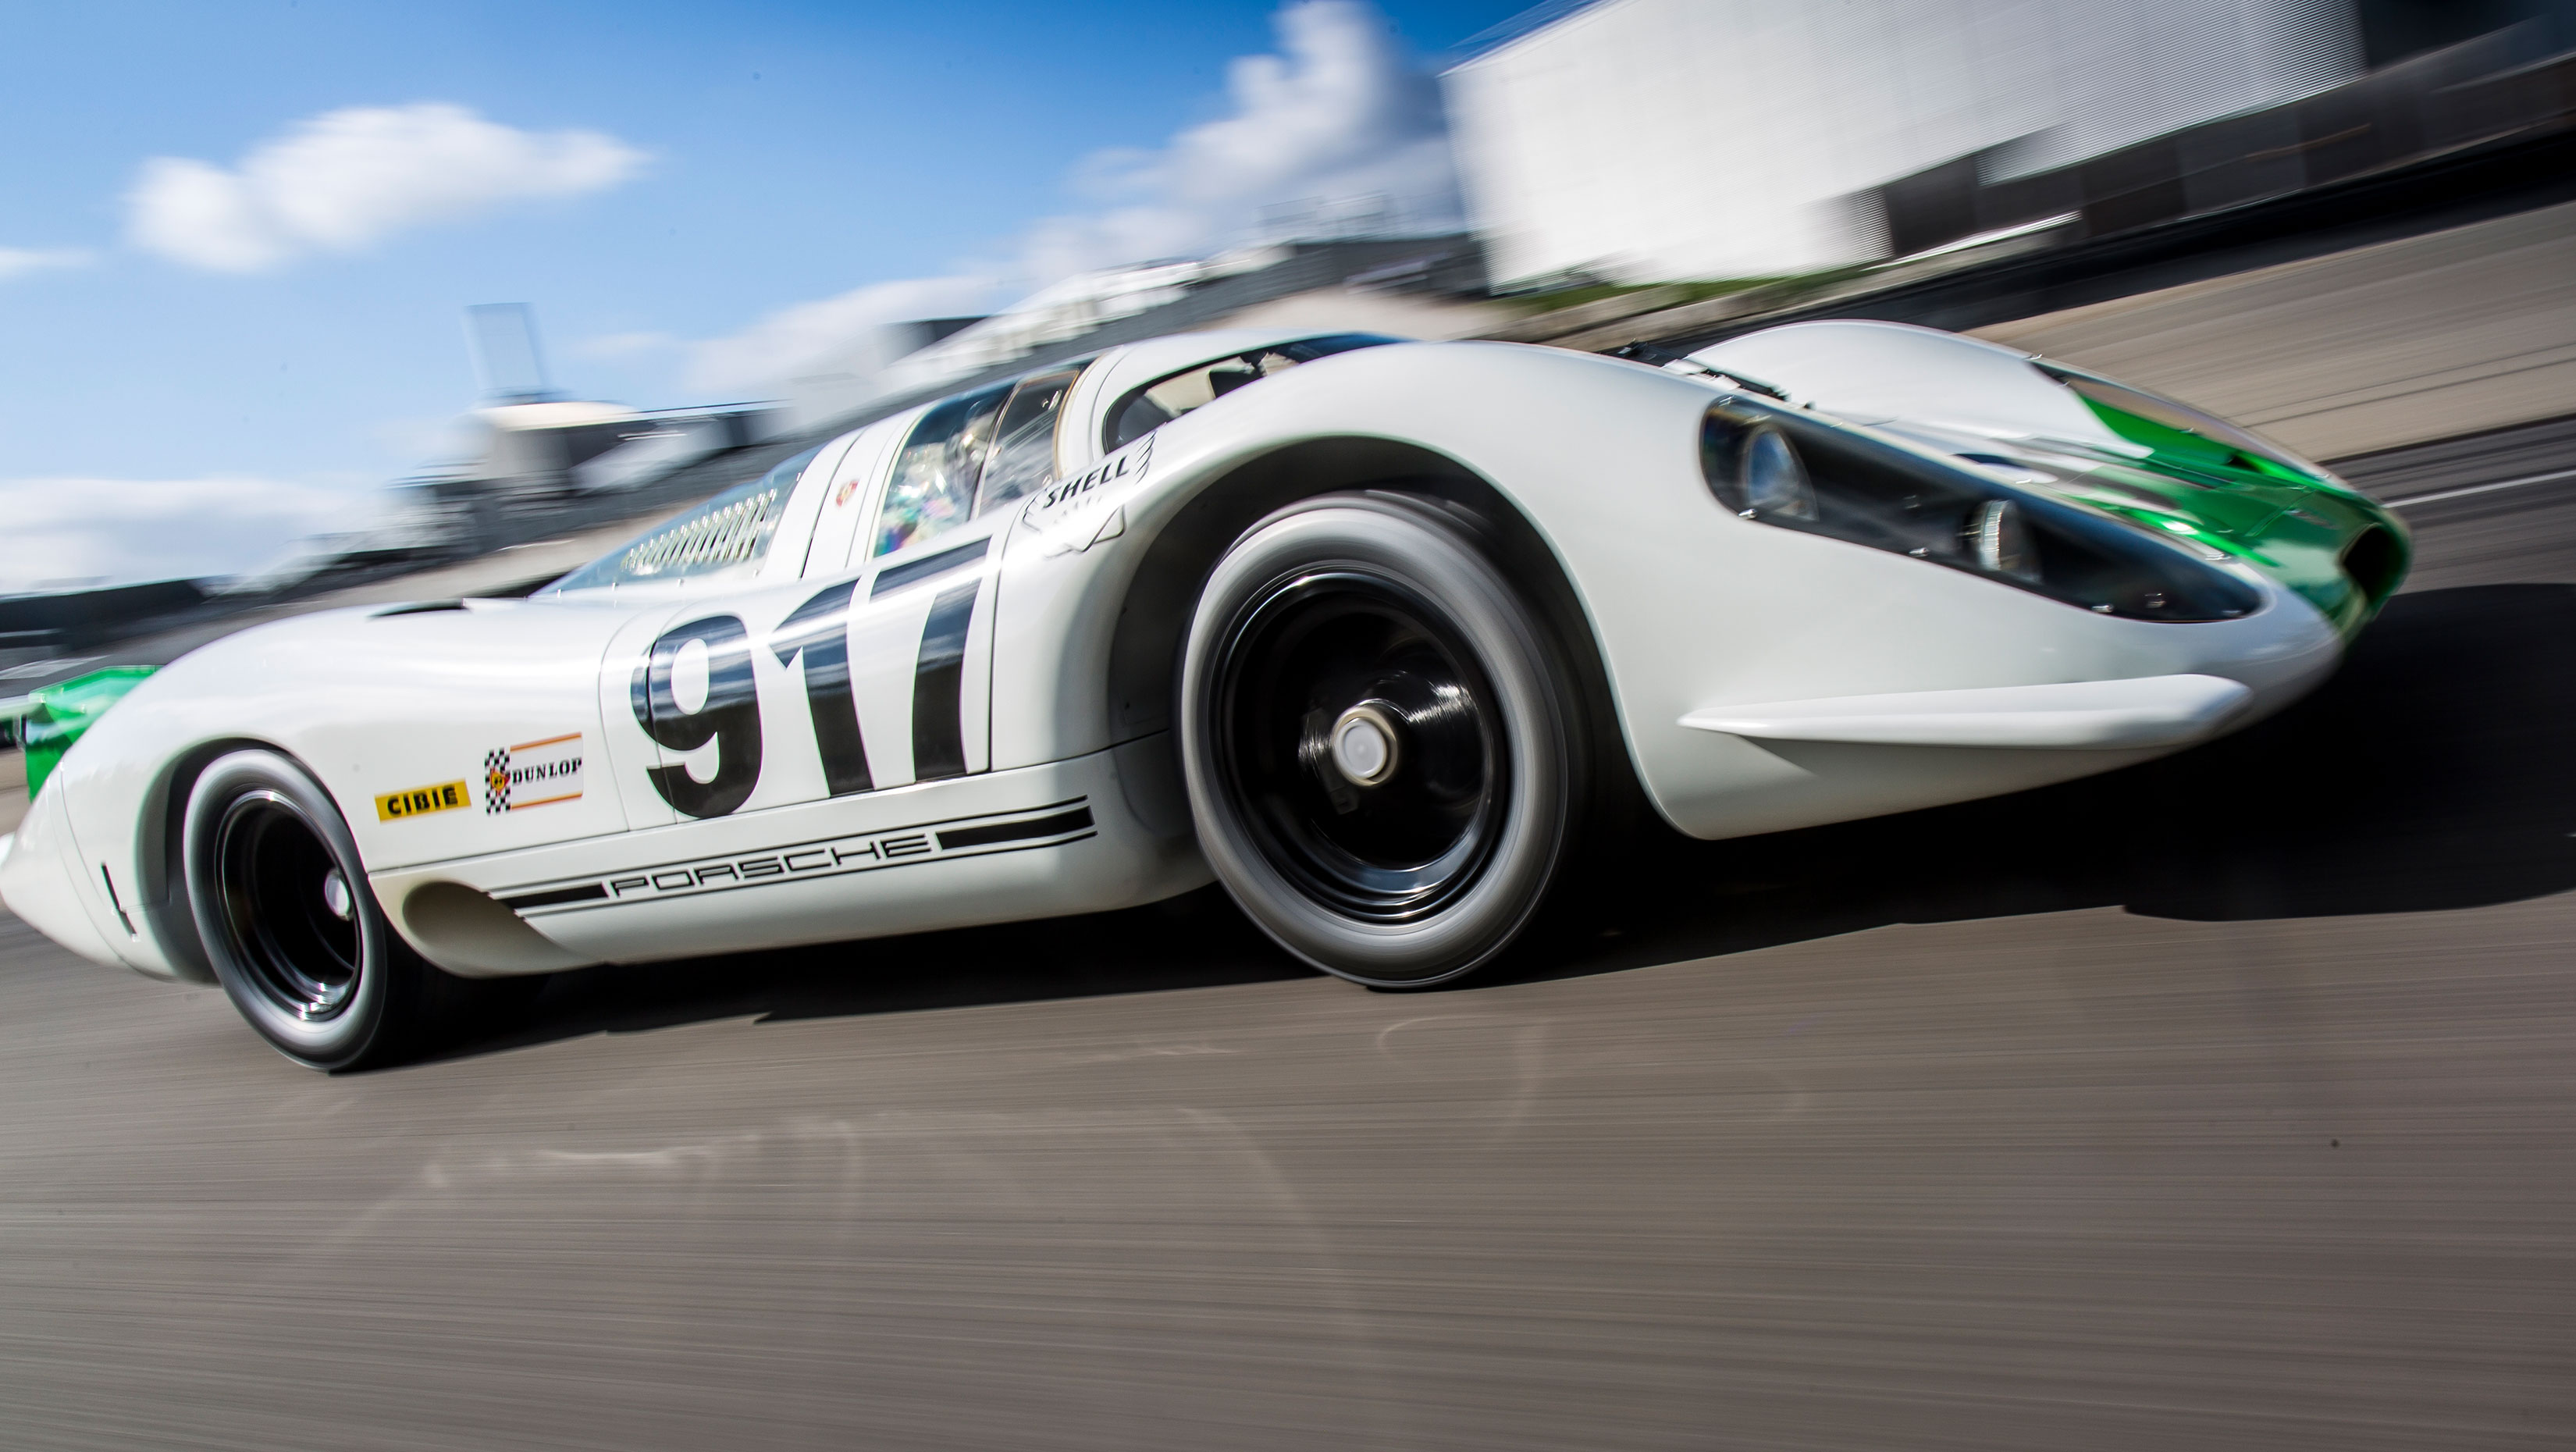 The trailblazer returns - 50 years of the Porsche 917